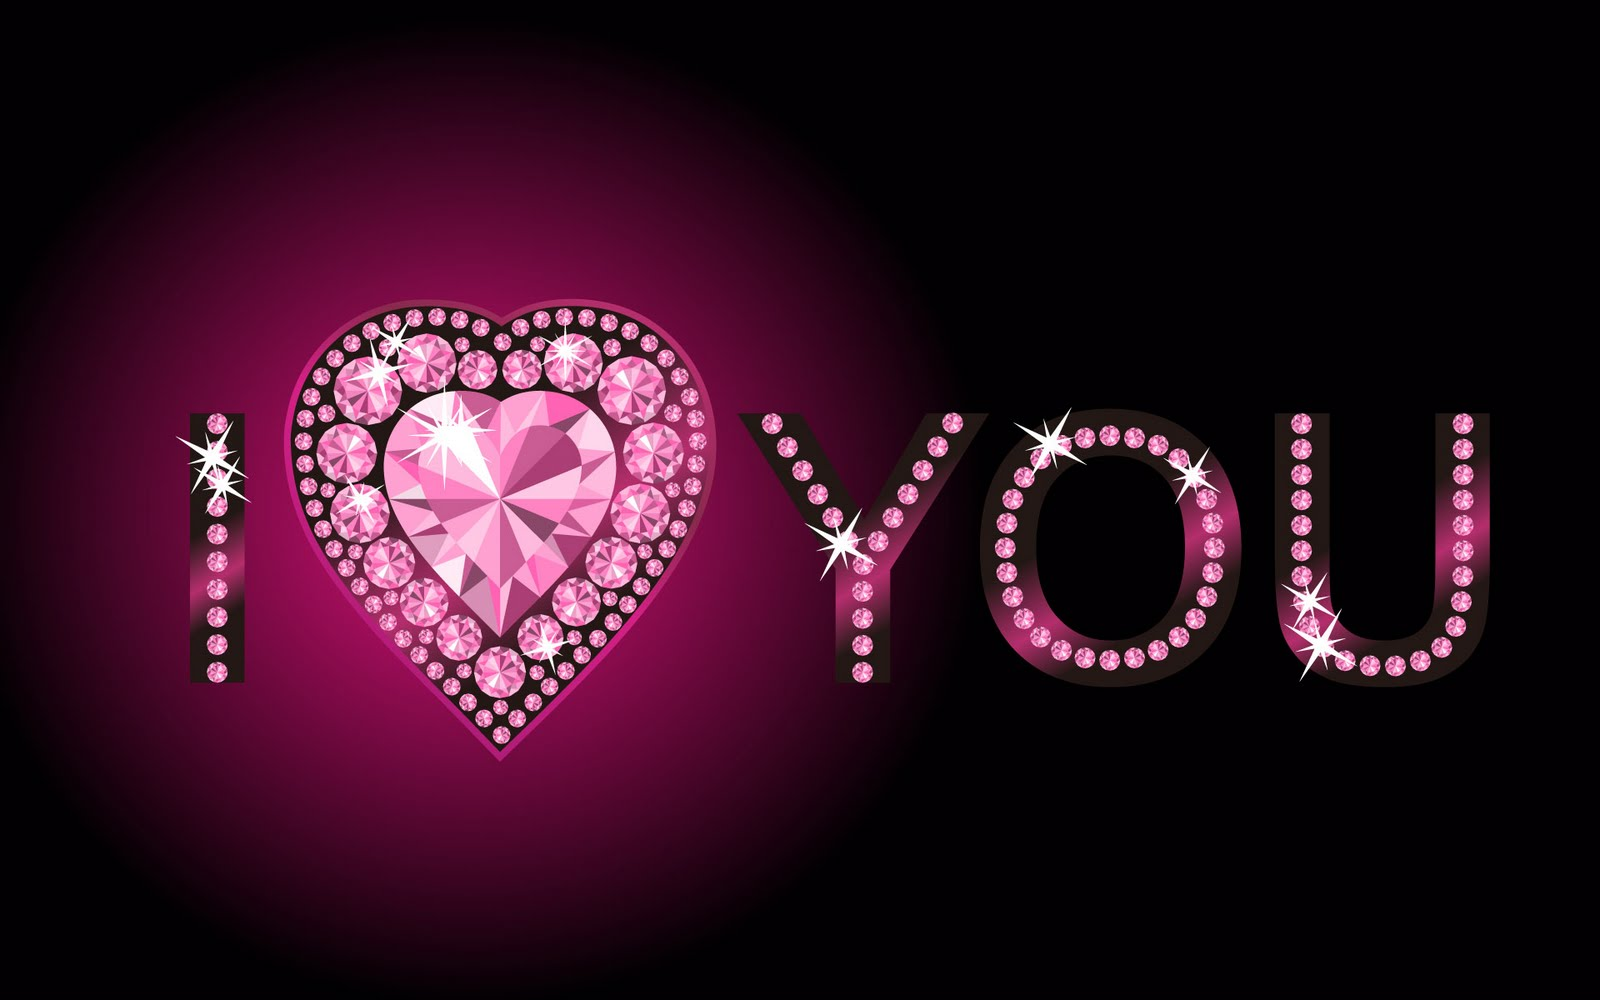 free wallpapers heart wallpapers love wallpaper valentine wallpapers ...